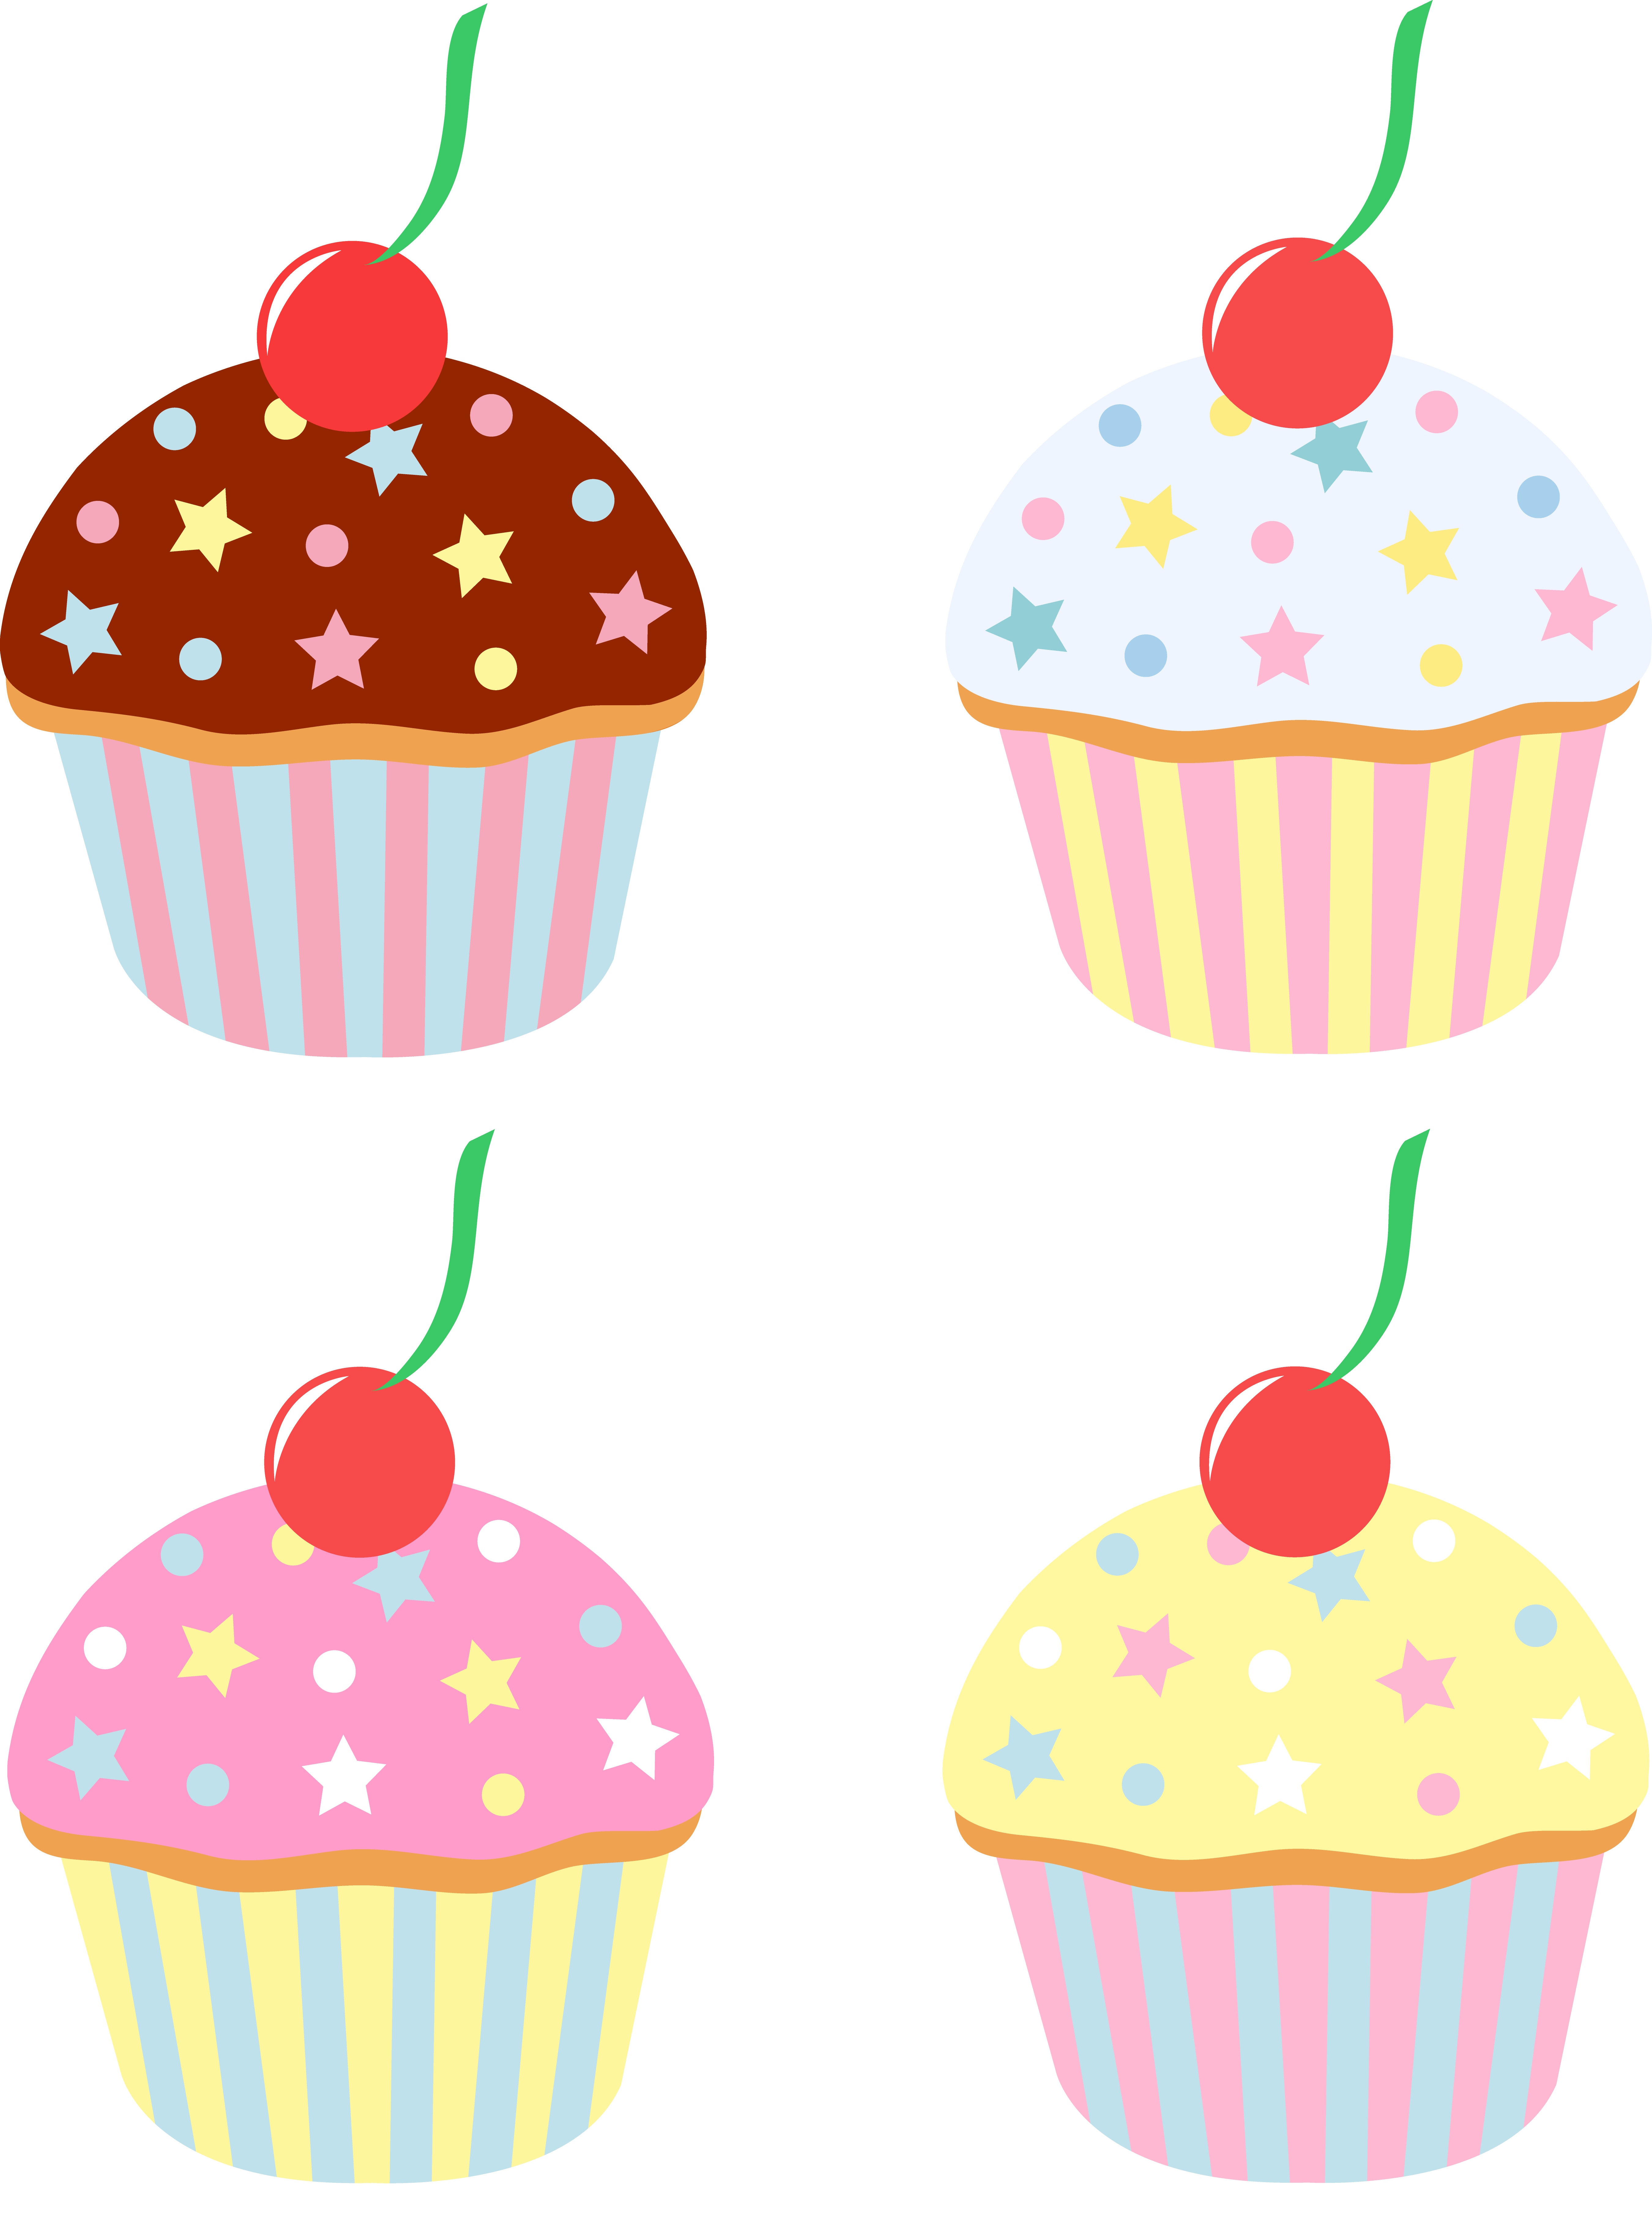 cupcakes%20with%20sprinkles%20clipart